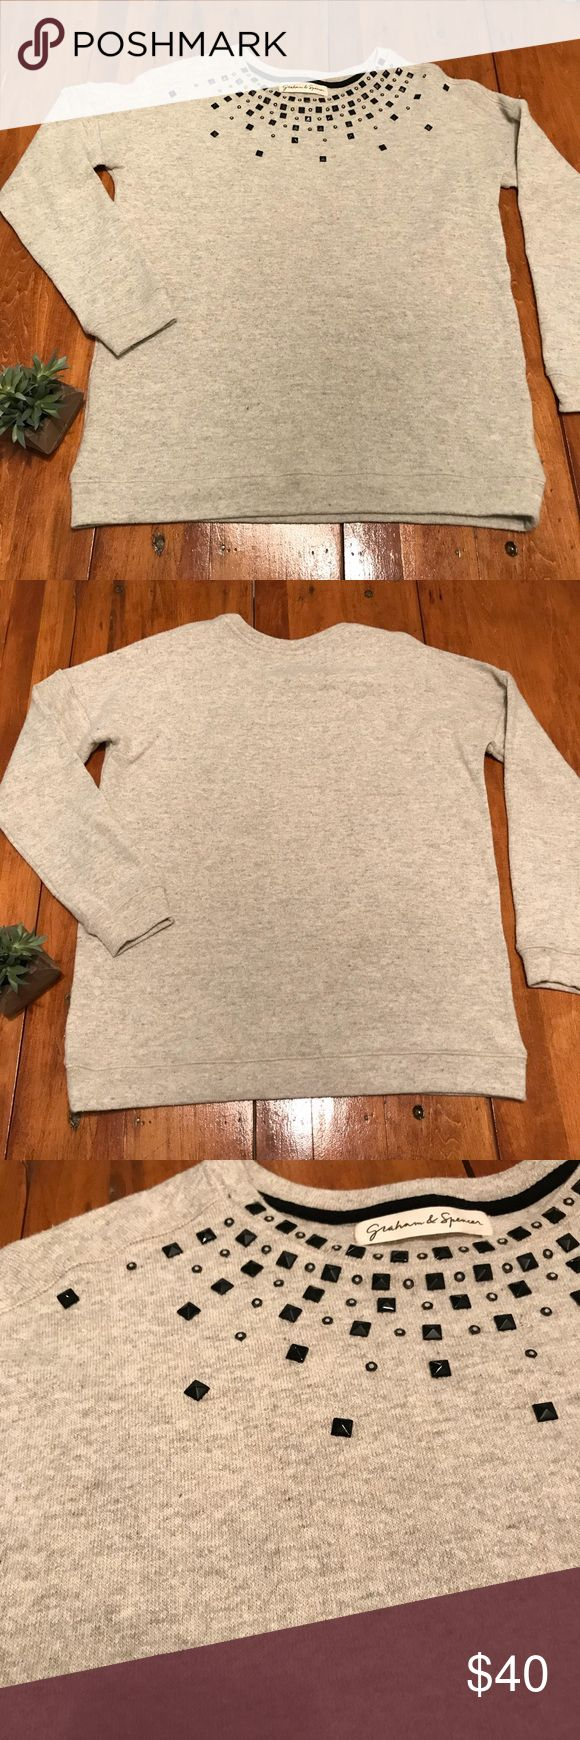 """Graham & Spencer Bead Embellished Sweatshirt Comfort and style meet in this sweatshirt by Graham & Spencer.   Approximate measurements: bust 23.4"""", length 26.5"""", sleeve length 18"""" Condition: EUC with no rips or stains Fabric: 44% acrylic, 36% wool, 18% silk, 2% spandex RN 109220, CA 42241 Graham & Spencer Tops Sweatshirts & Hoodies"""